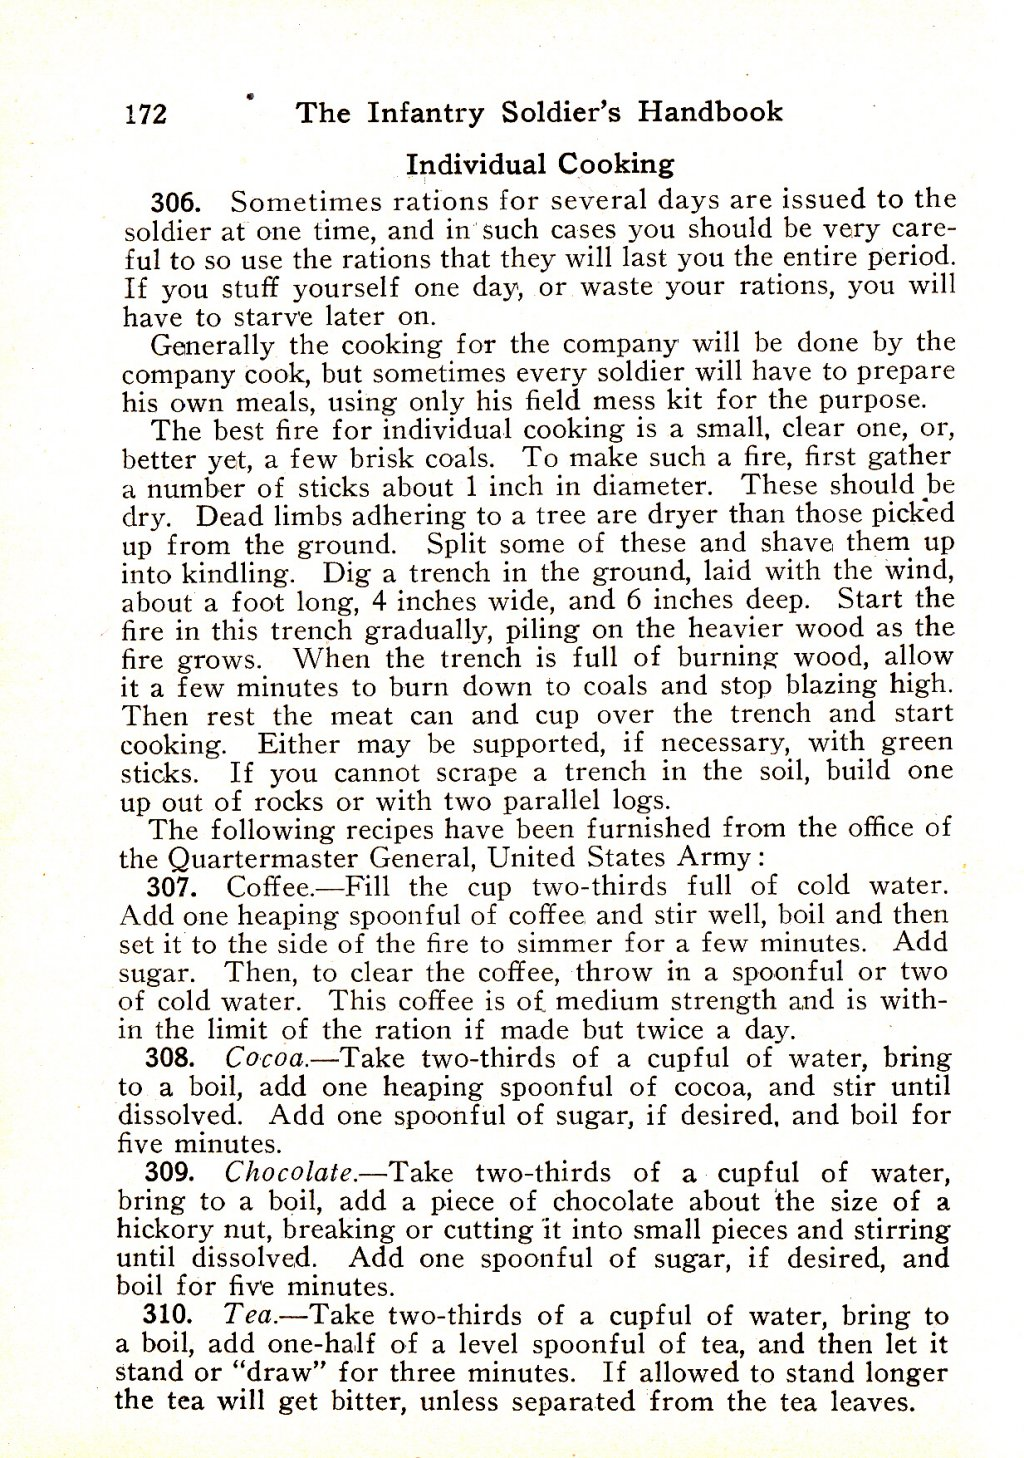 314th Infantry Regiment - Infantry Soldiers Handbook - Waldron - Page 172